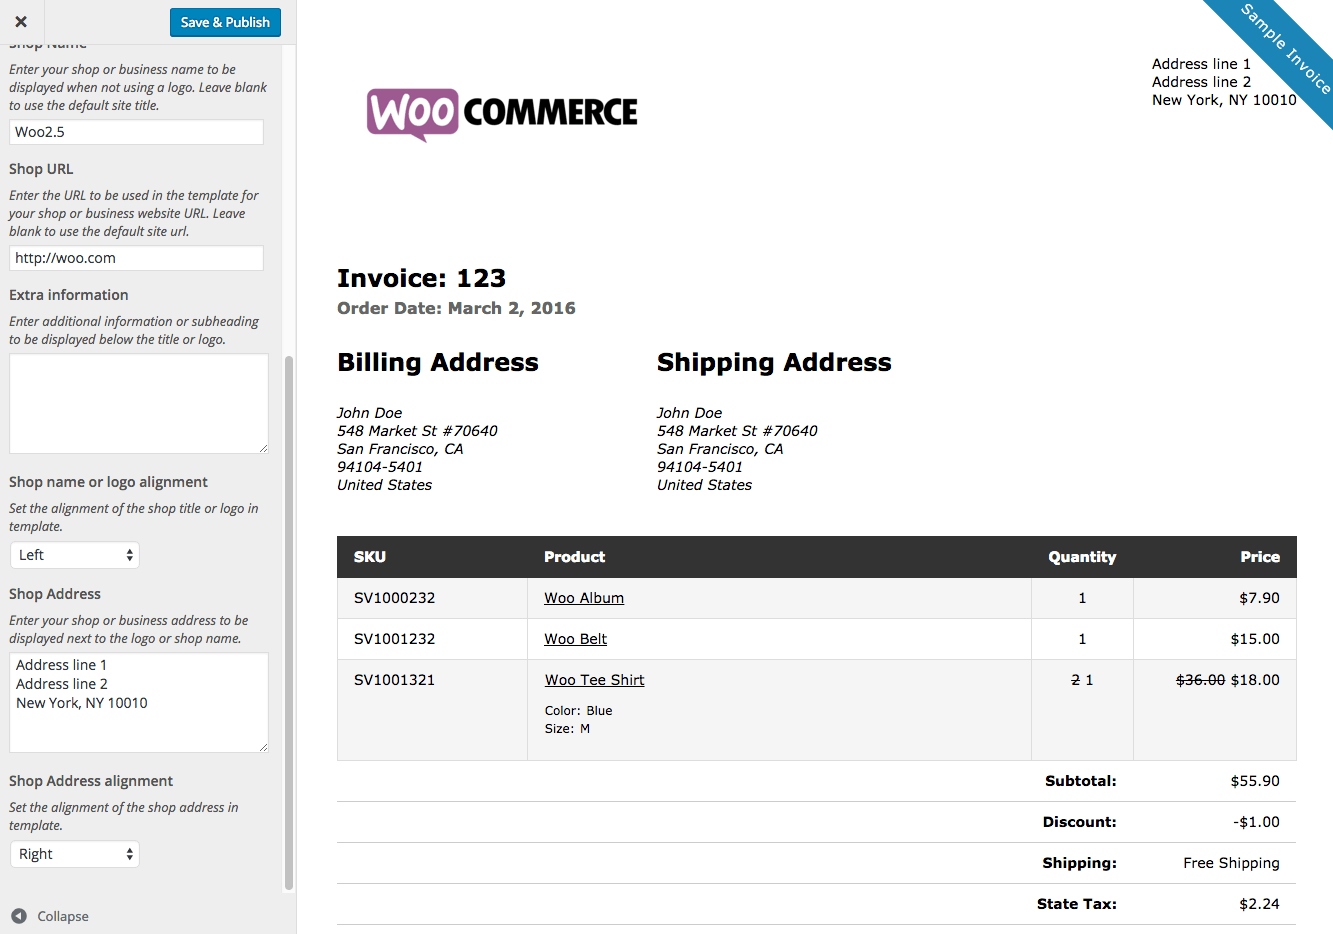 Darkfaderus  Prepossessing Woocommerce Print Invoices Amp Packing Lists  Woocommerce Docs With Foxy Woocommerce Print Invoices  Packing Lists Customizer With Cute Past Due Invoice Notice Also Xero Invoice Templates In Addition Estimate And Invoice Software And Excel Invoice Software As Well As What Is A Dealer Invoice Additionally Free Microsoft Word Invoice Template From Docswoocommercecom With Darkfaderus  Foxy Woocommerce Print Invoices Amp Packing Lists  Woocommerce Docs With Cute Woocommerce Print Invoices  Packing Lists Customizer And Prepossessing Past Due Invoice Notice Also Xero Invoice Templates In Addition Estimate And Invoice Software From Docswoocommercecom